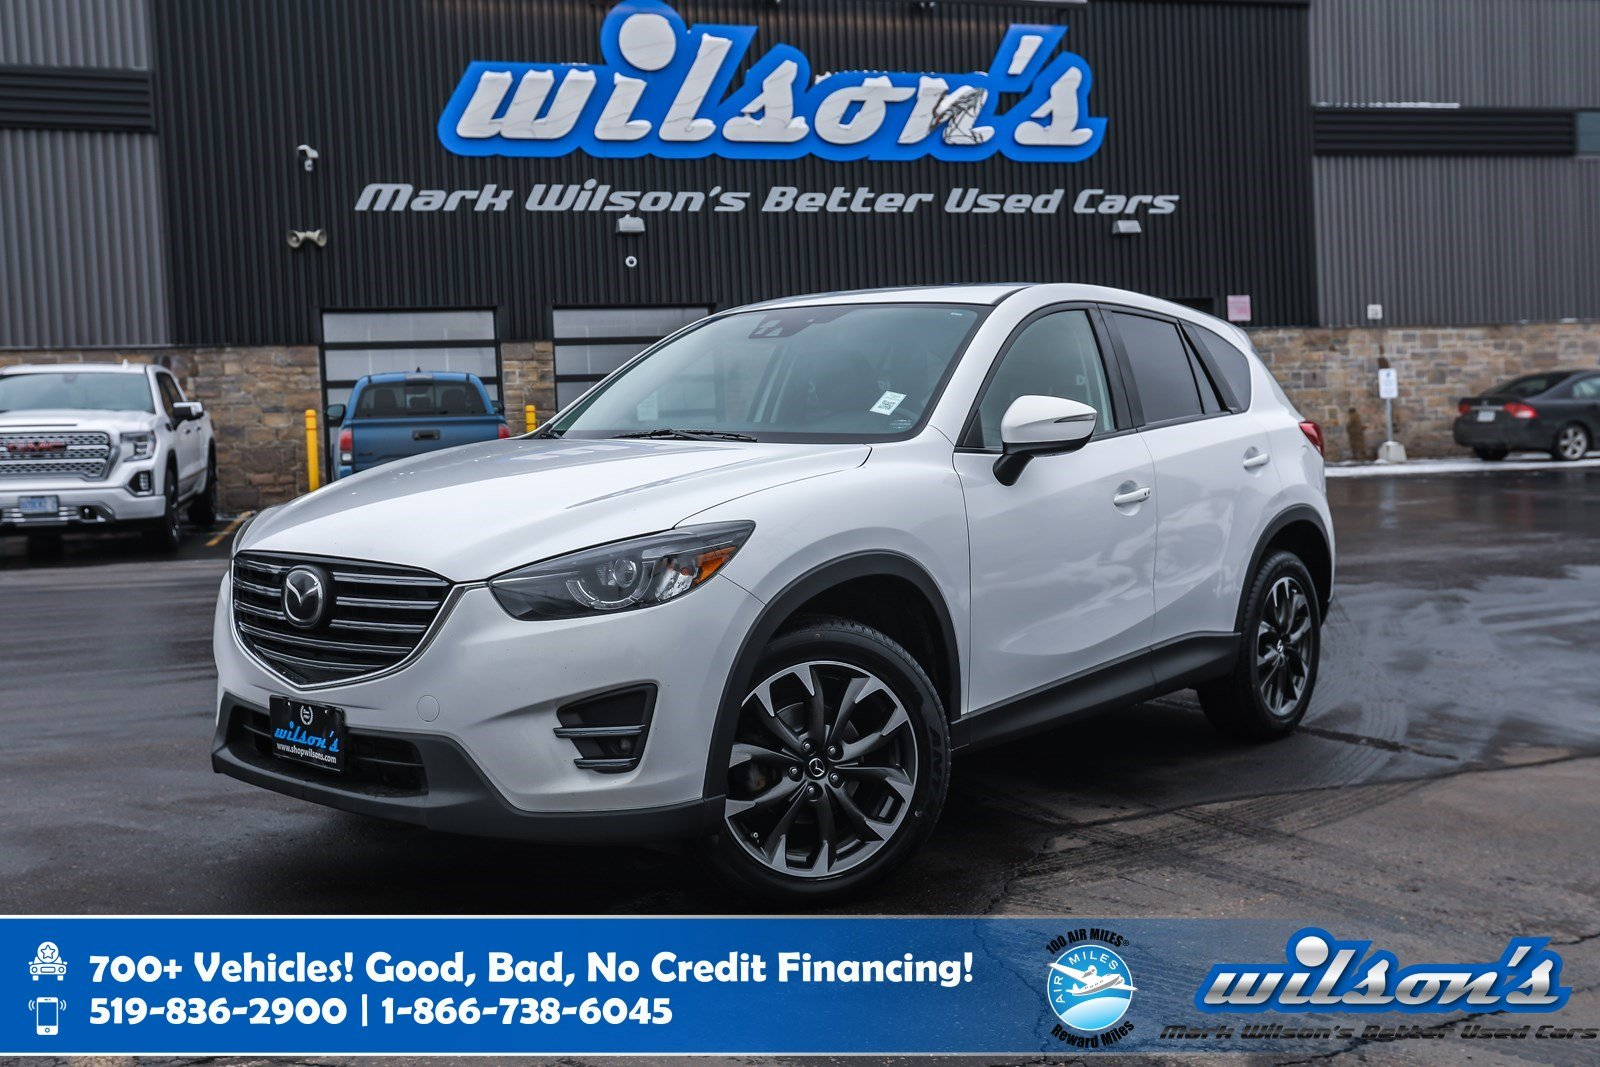 Certified Pre-Owned 2016 Mazda CX-5 GT AWD, Leather, Navigation, Sunroof, New Tires, Rear Camera, Bluetooth, Heated Seats and more!